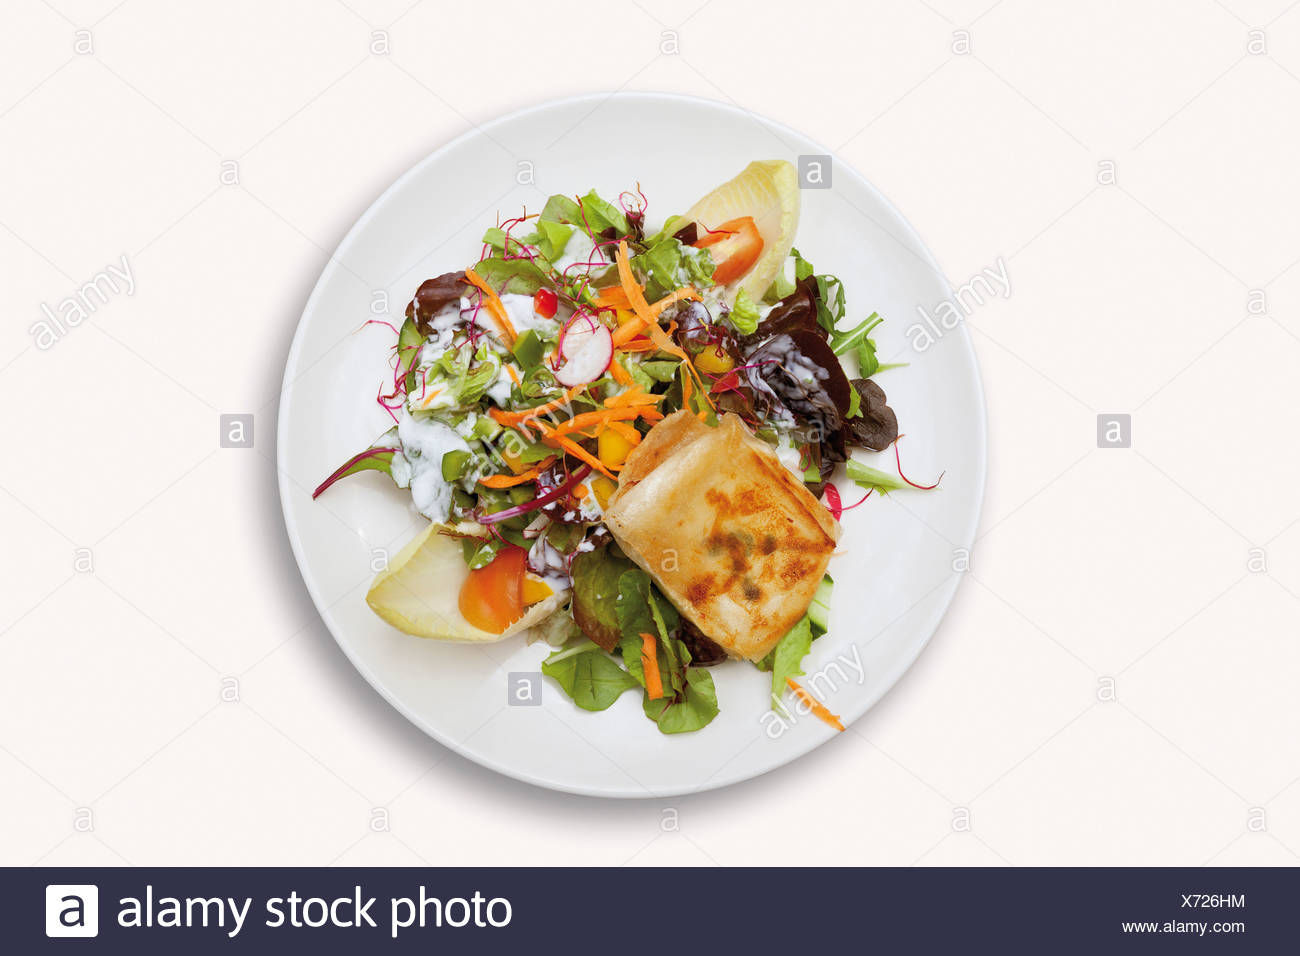 Close up of goat cheese au gratin with mixed salad on white background - Stock Image